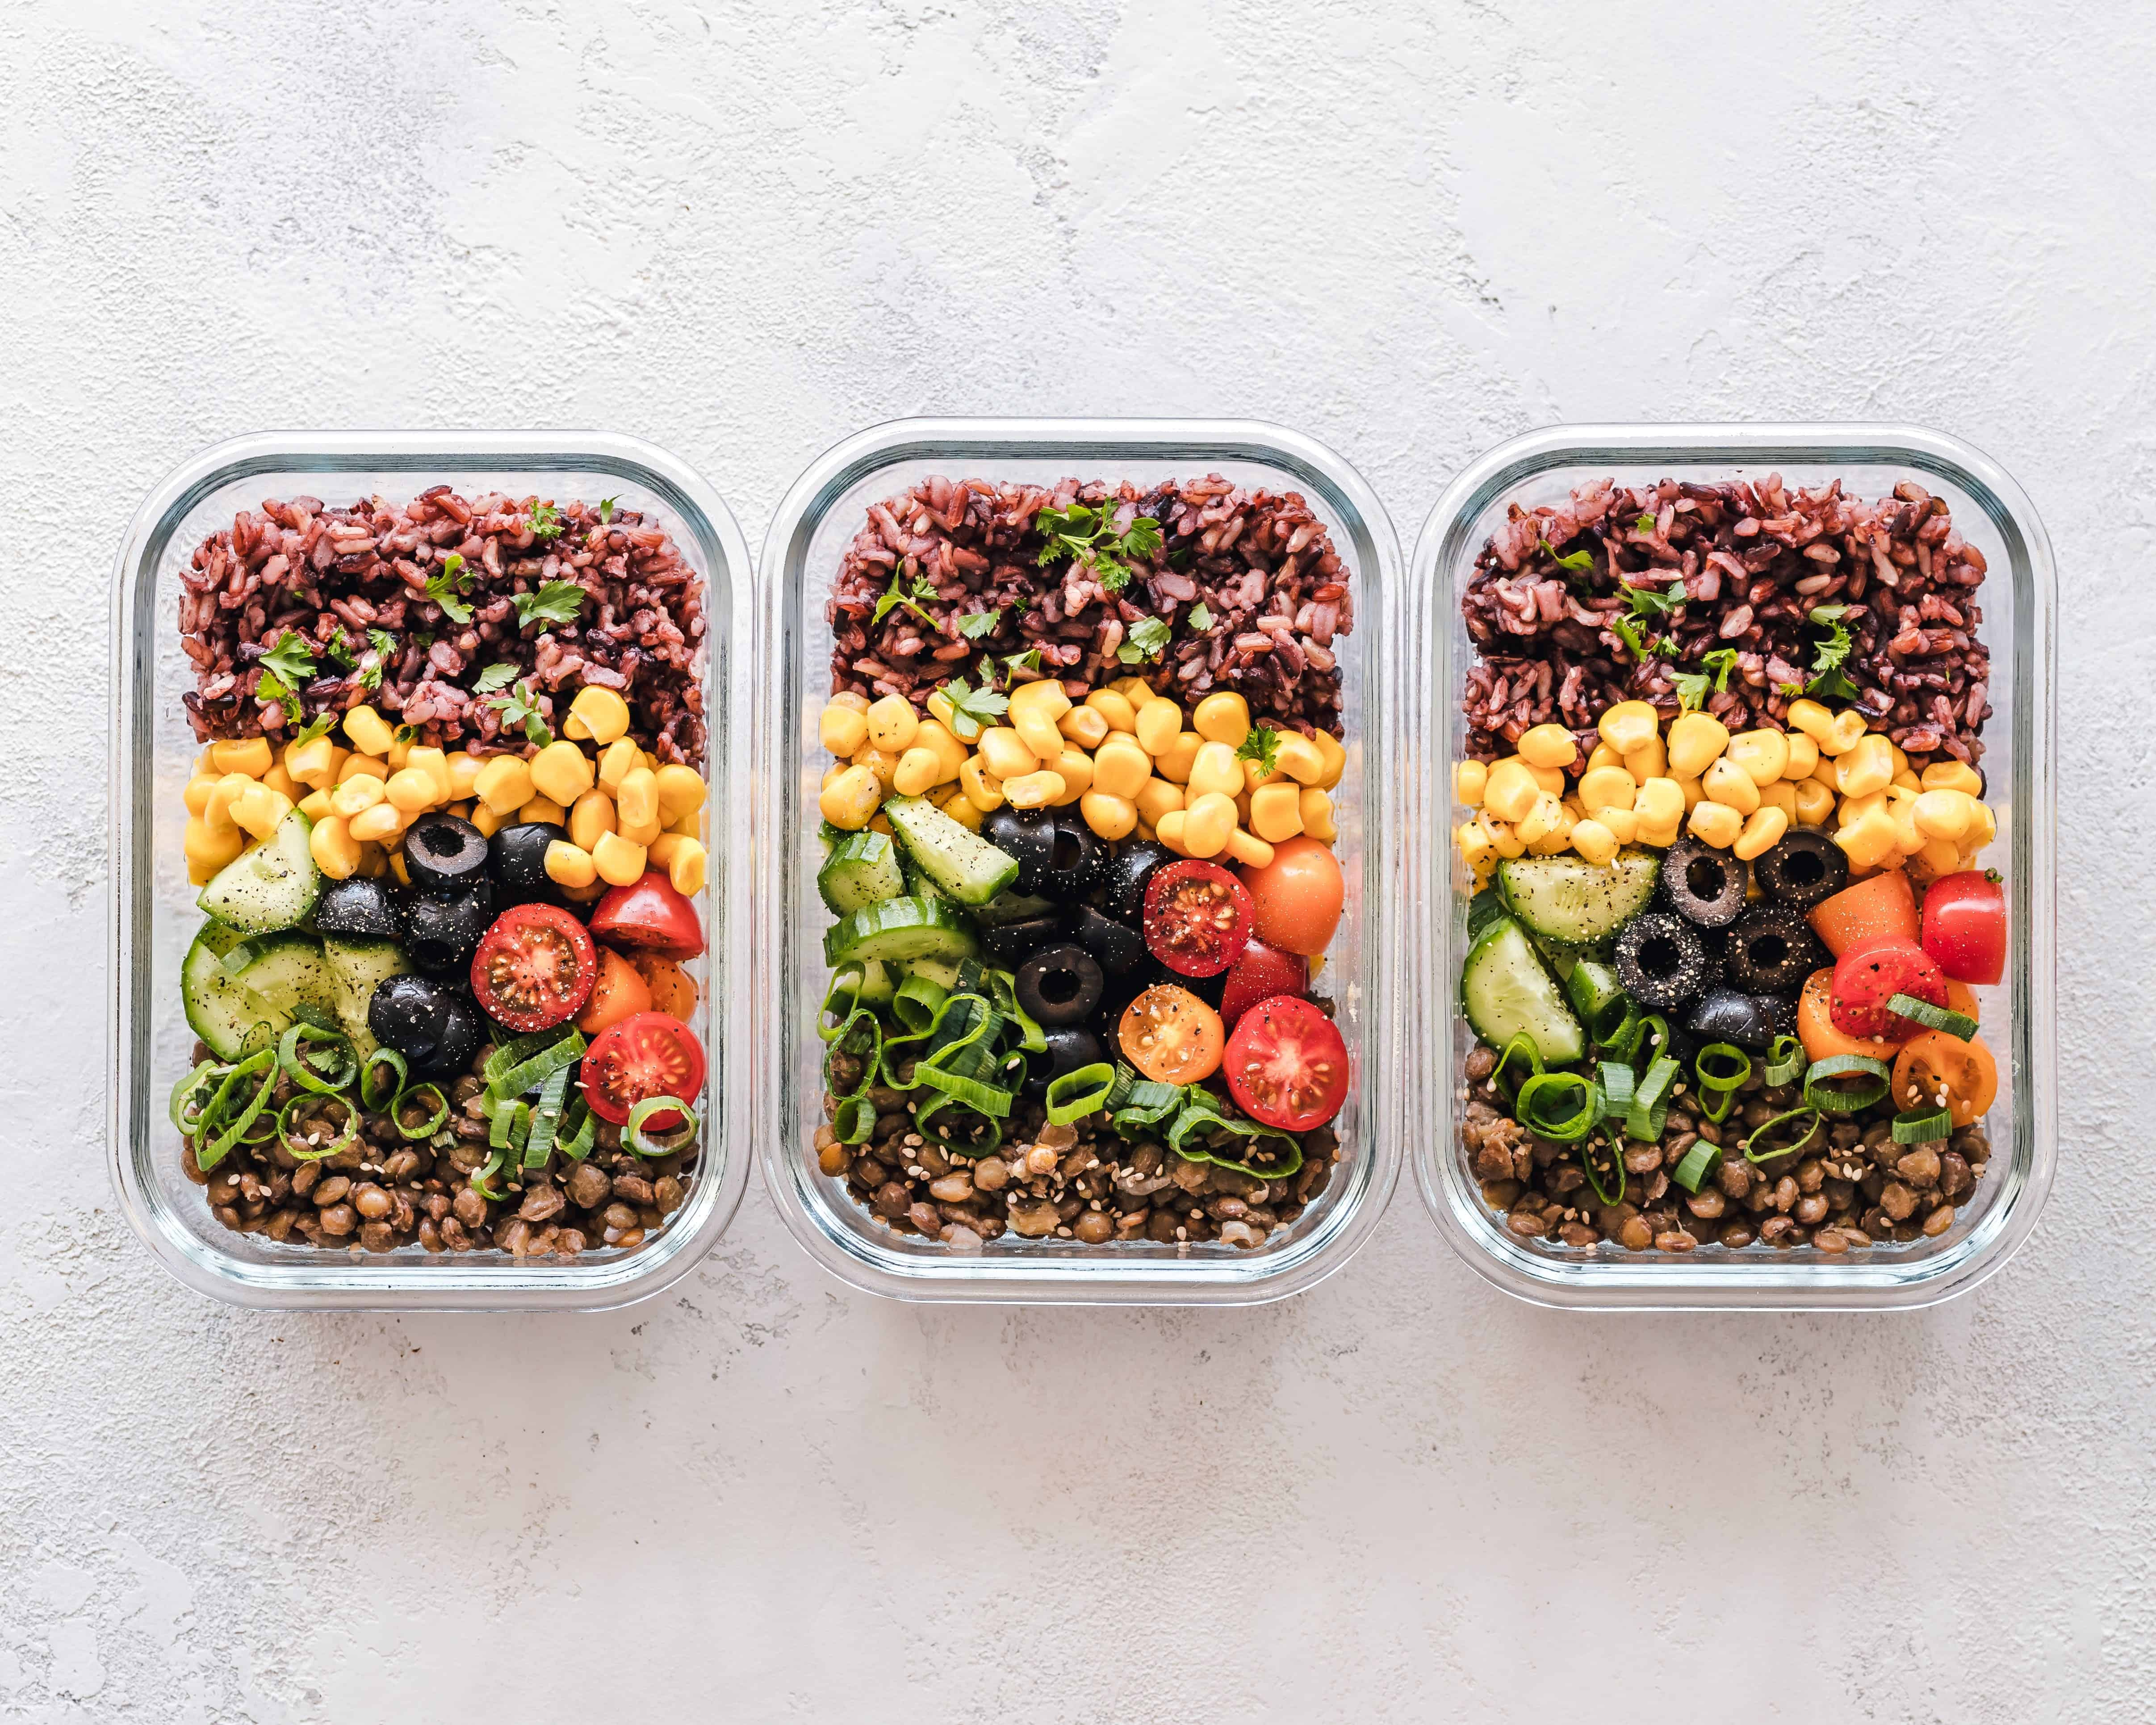 three bowls of food for meal planning